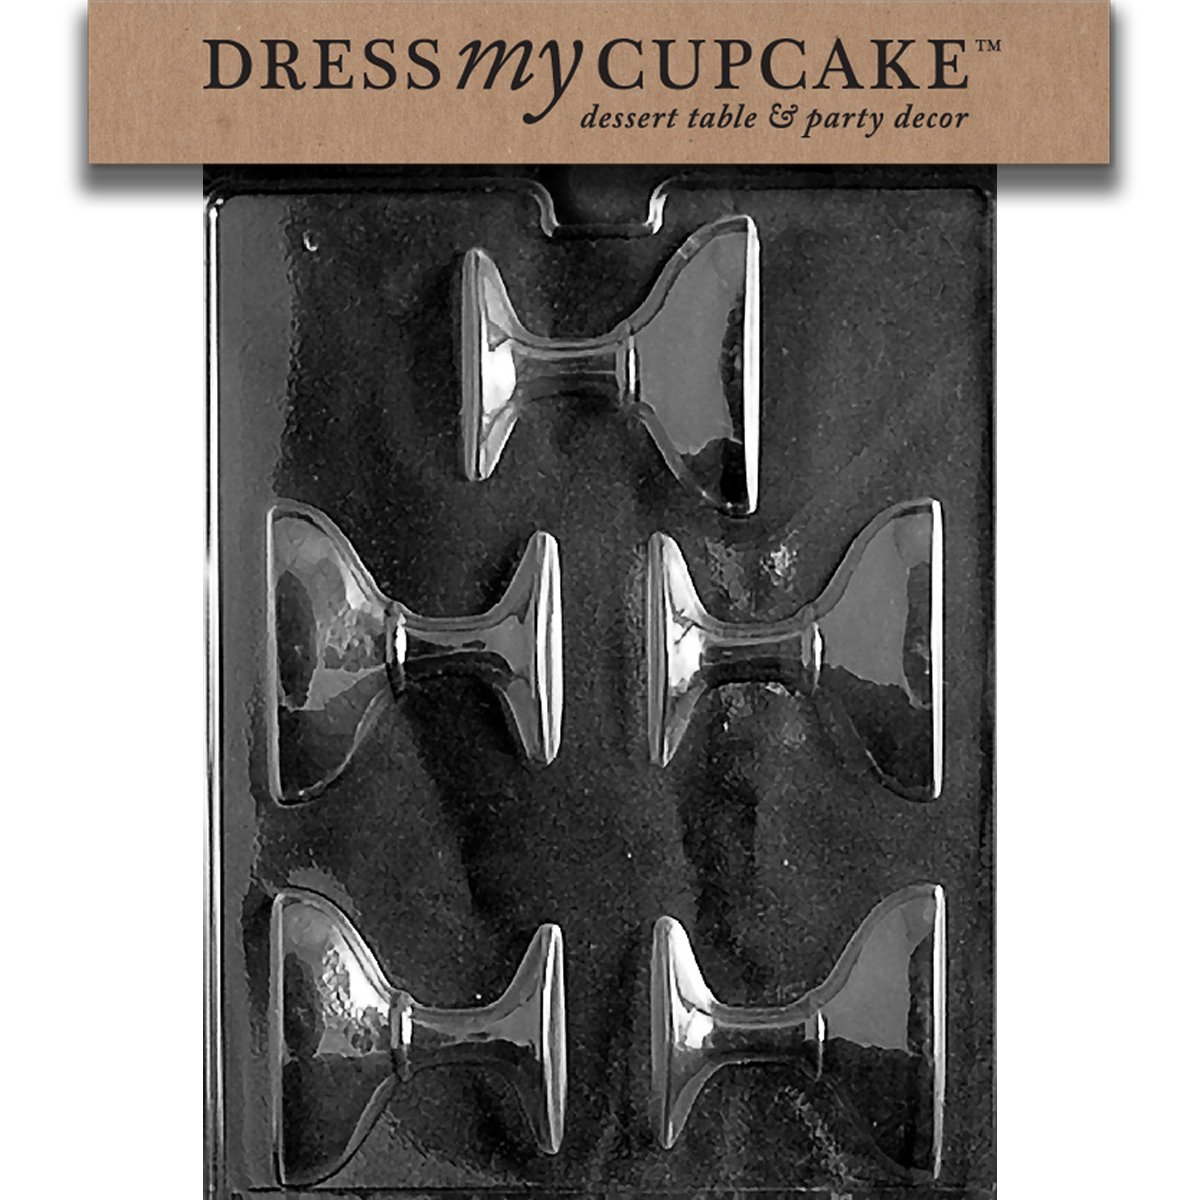 Includes 50 Lollipop Sticks and 50 Cello Bags CybrtraydFace Scarecrow Lolly Chocolate Mold with Chocolatiers Bundle